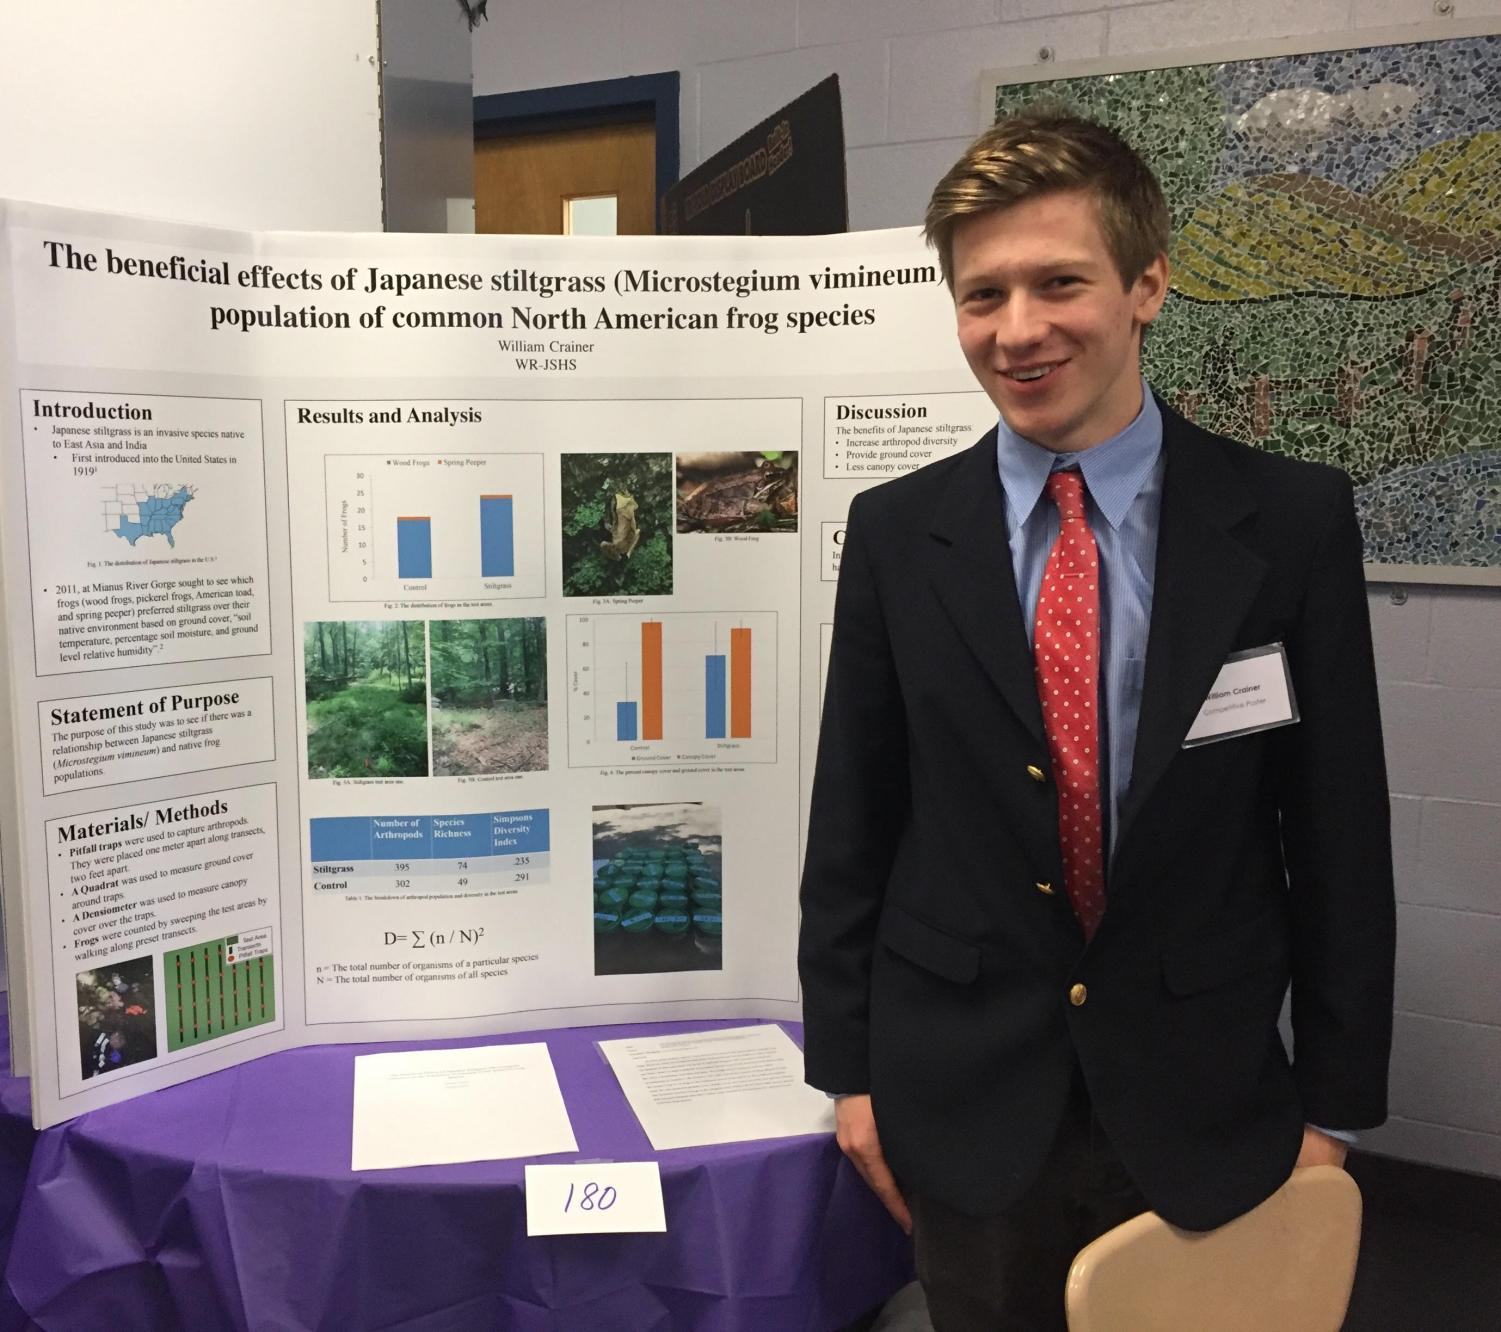 Will Crainer's work at the Mianus River Gorge gives him many opportunities to create projects regarding his studies of frogs. He presents his poster on the effects of Japanese stilt grass on the population of North American frogs at a science competition.